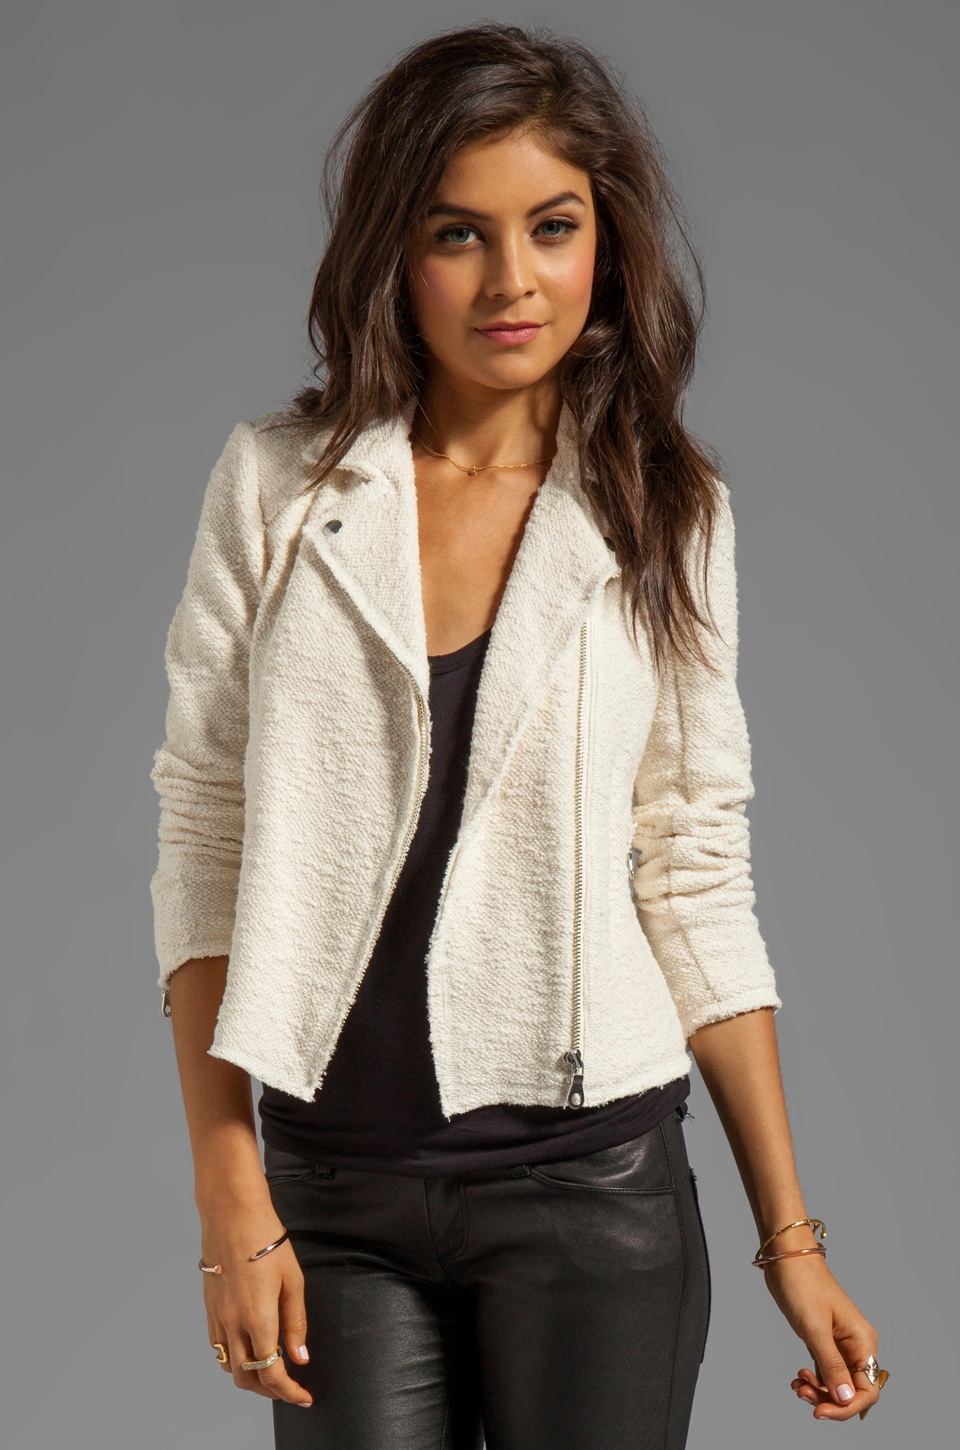 Rebecca Taylor Boucle Moto Jacket in Cream